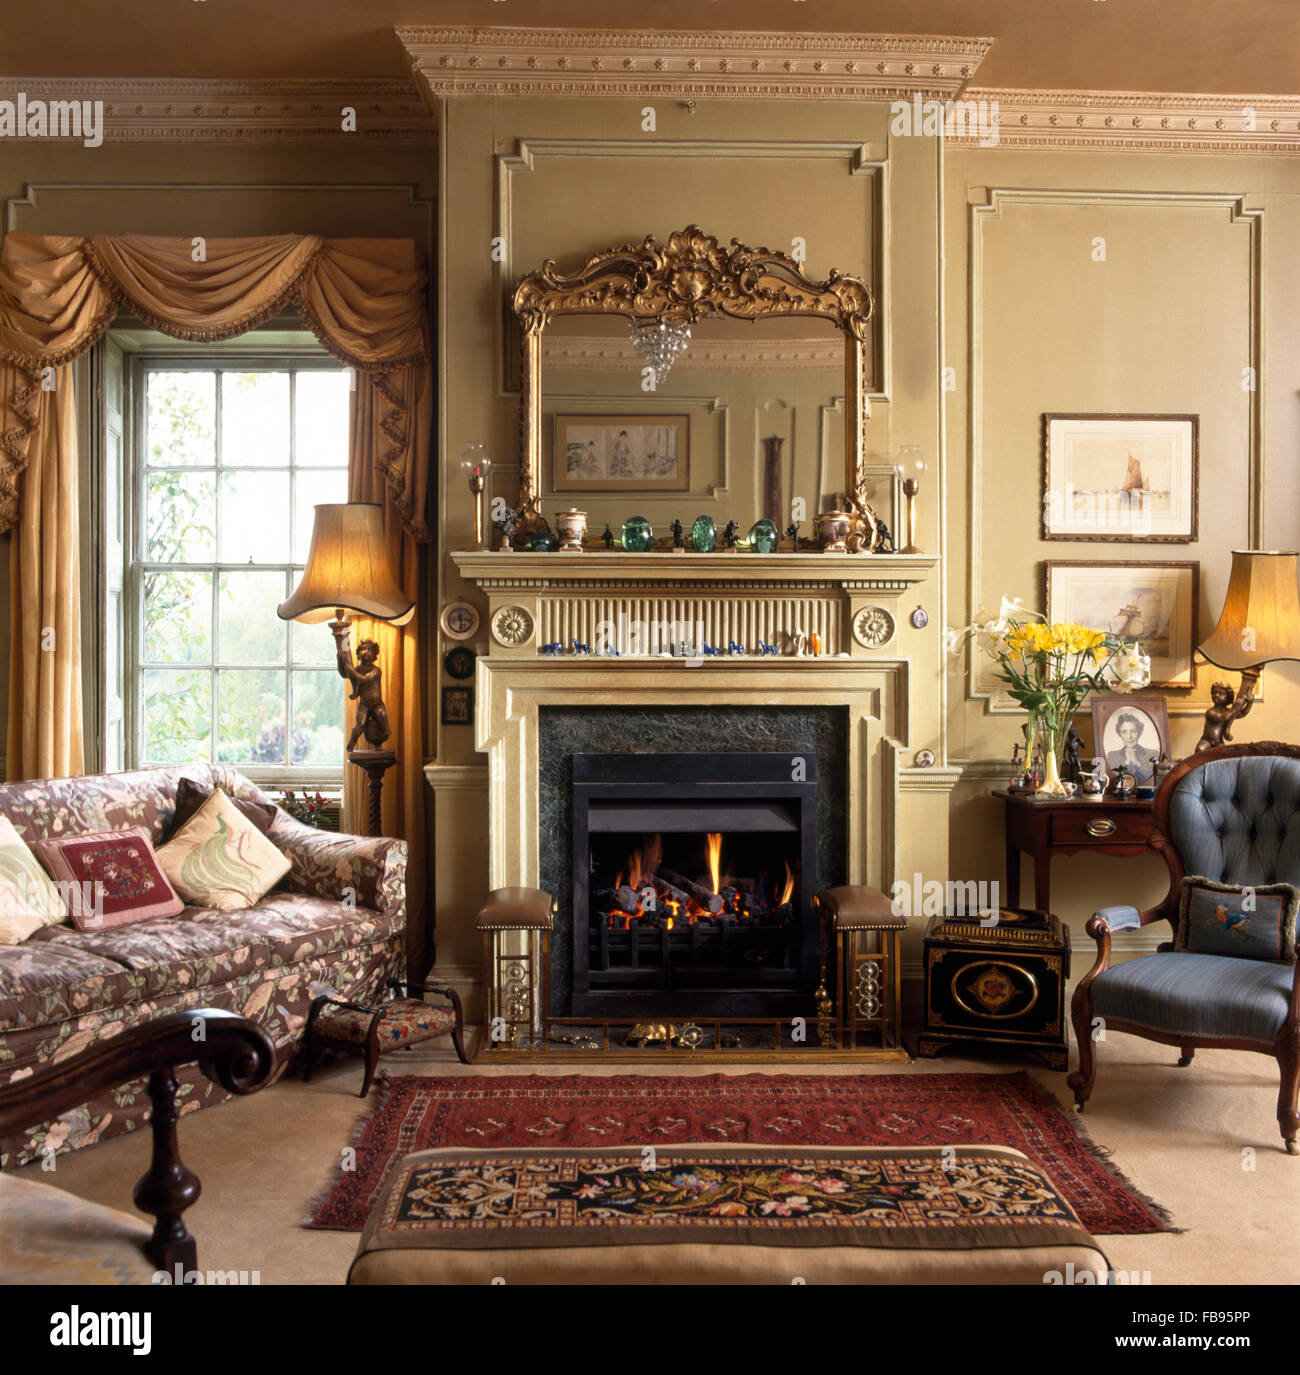 Antique mirror above fireplace in Georgian living room